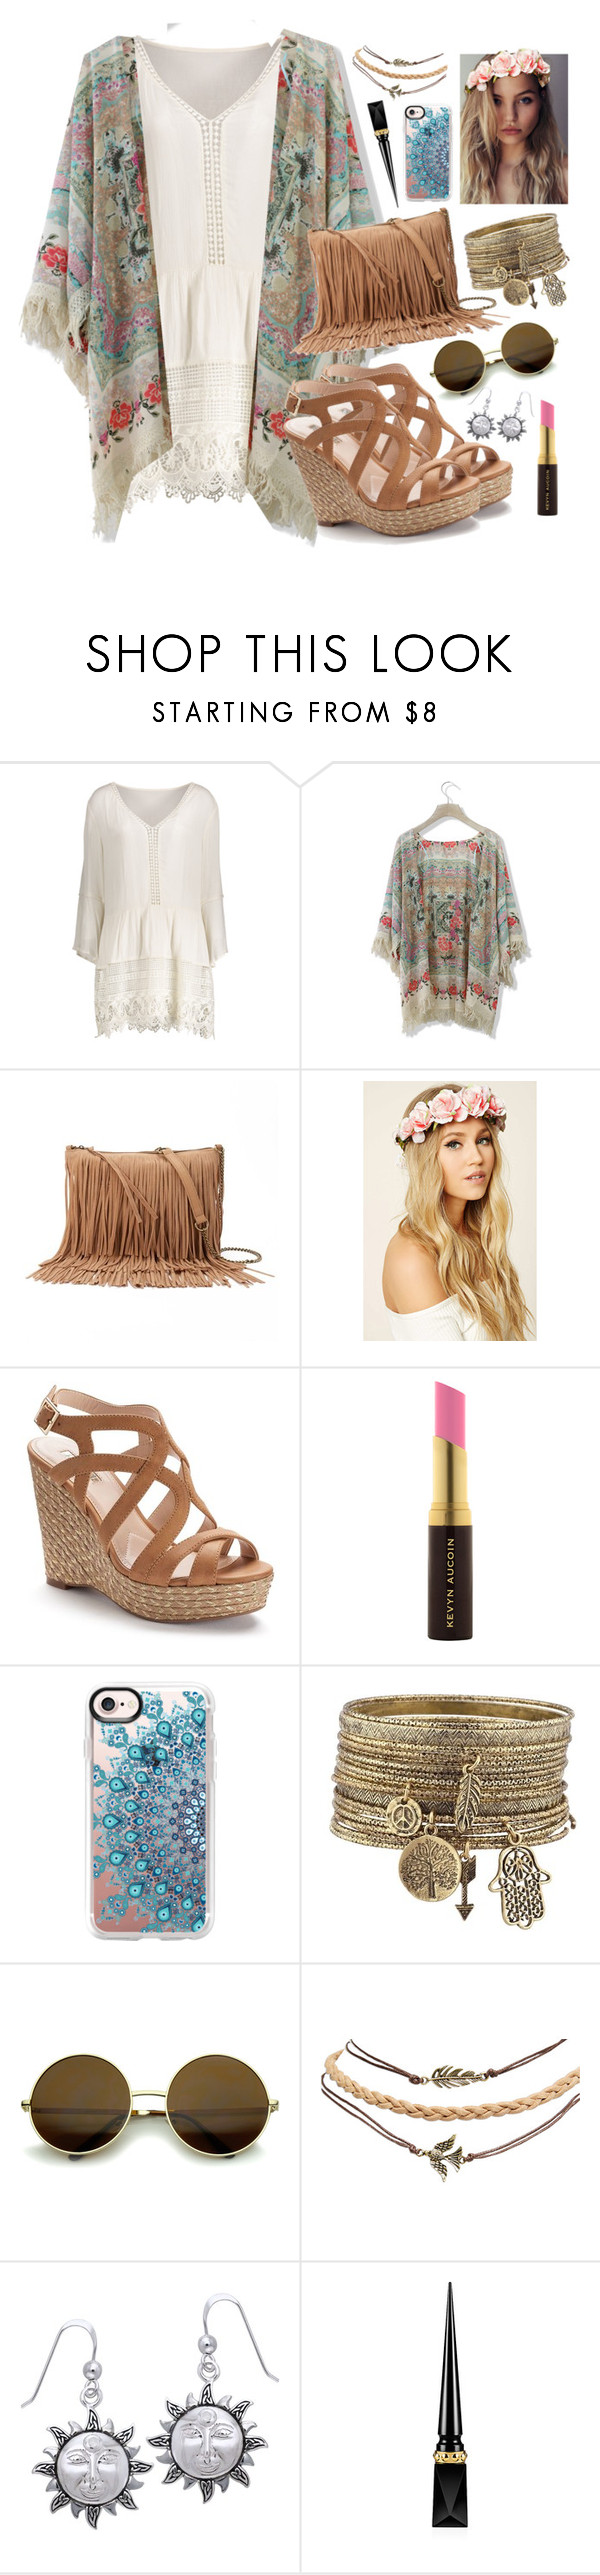 """""""Festival Fashion"""" by countless-possibilities ❤ liked on Polyvore featuring Chicwish, SONOMA Goods for Life, Forever 21, Jennifer Lopez, Kevyn Aucoin, Casetify, Wet Seal, Carolina Glamour Collection and Christian Louboutin"""